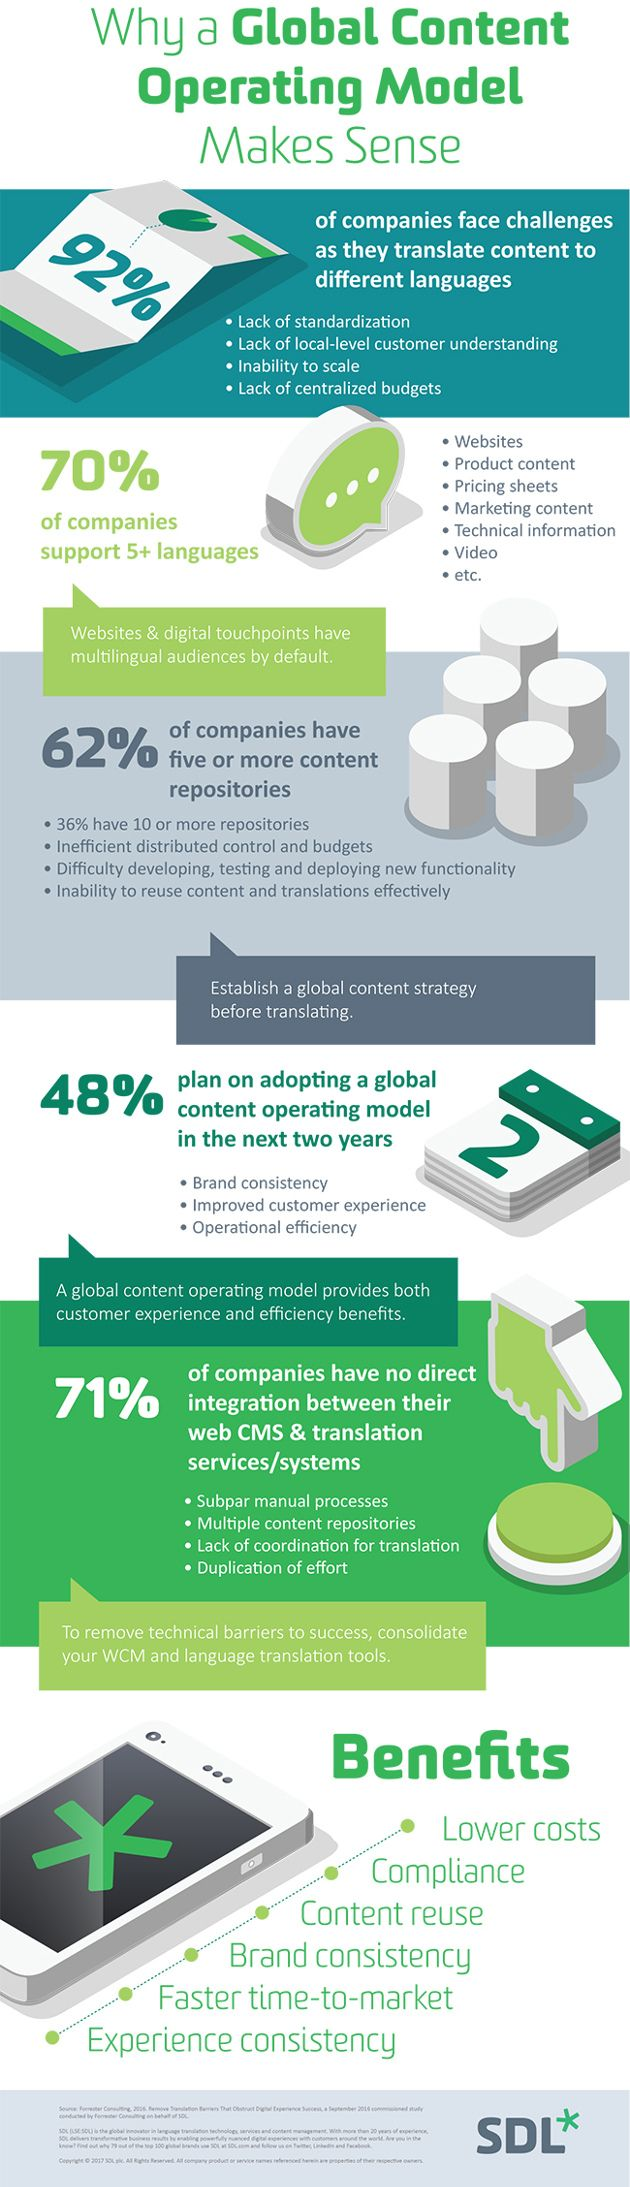 Marketing Strategy - Why a Global Content Model Makes Sense in Today's Market [Infographic] : MarketingProfs Article